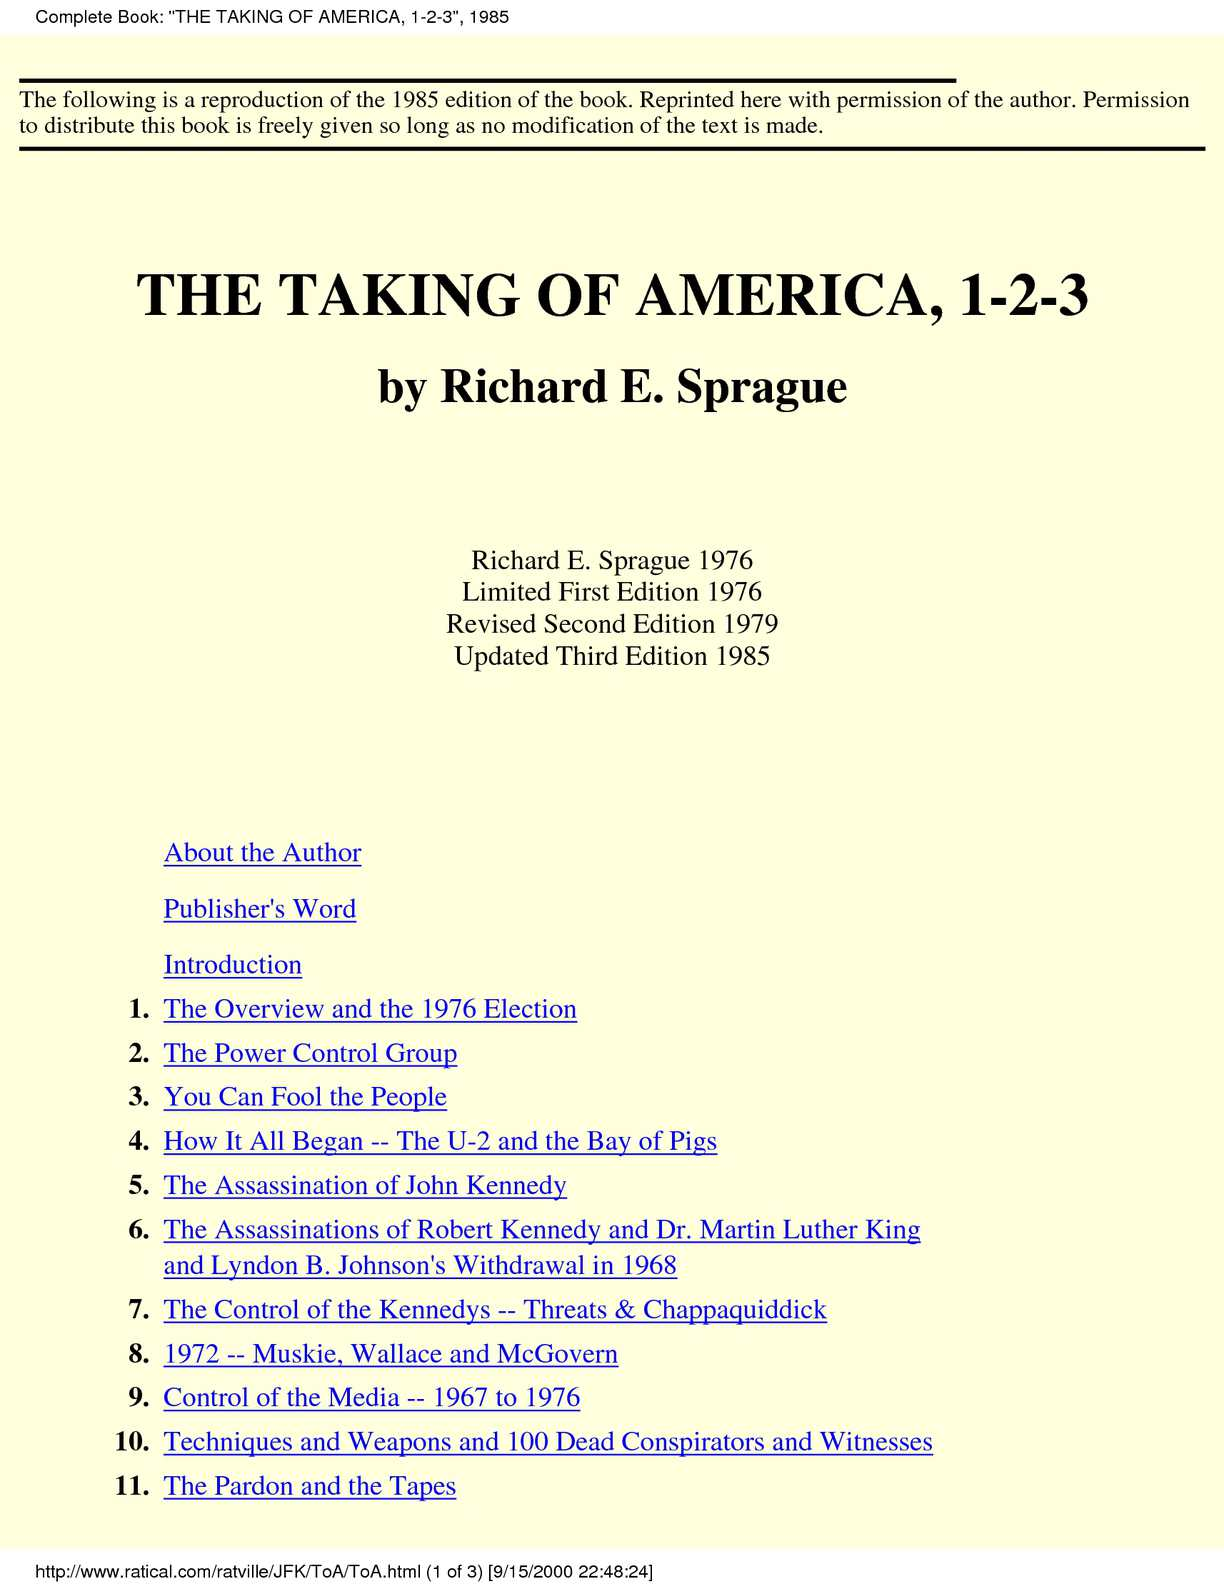 Calaméo - [conspiracy] The Taking of America 1-2-3 by Richard E.Sprague